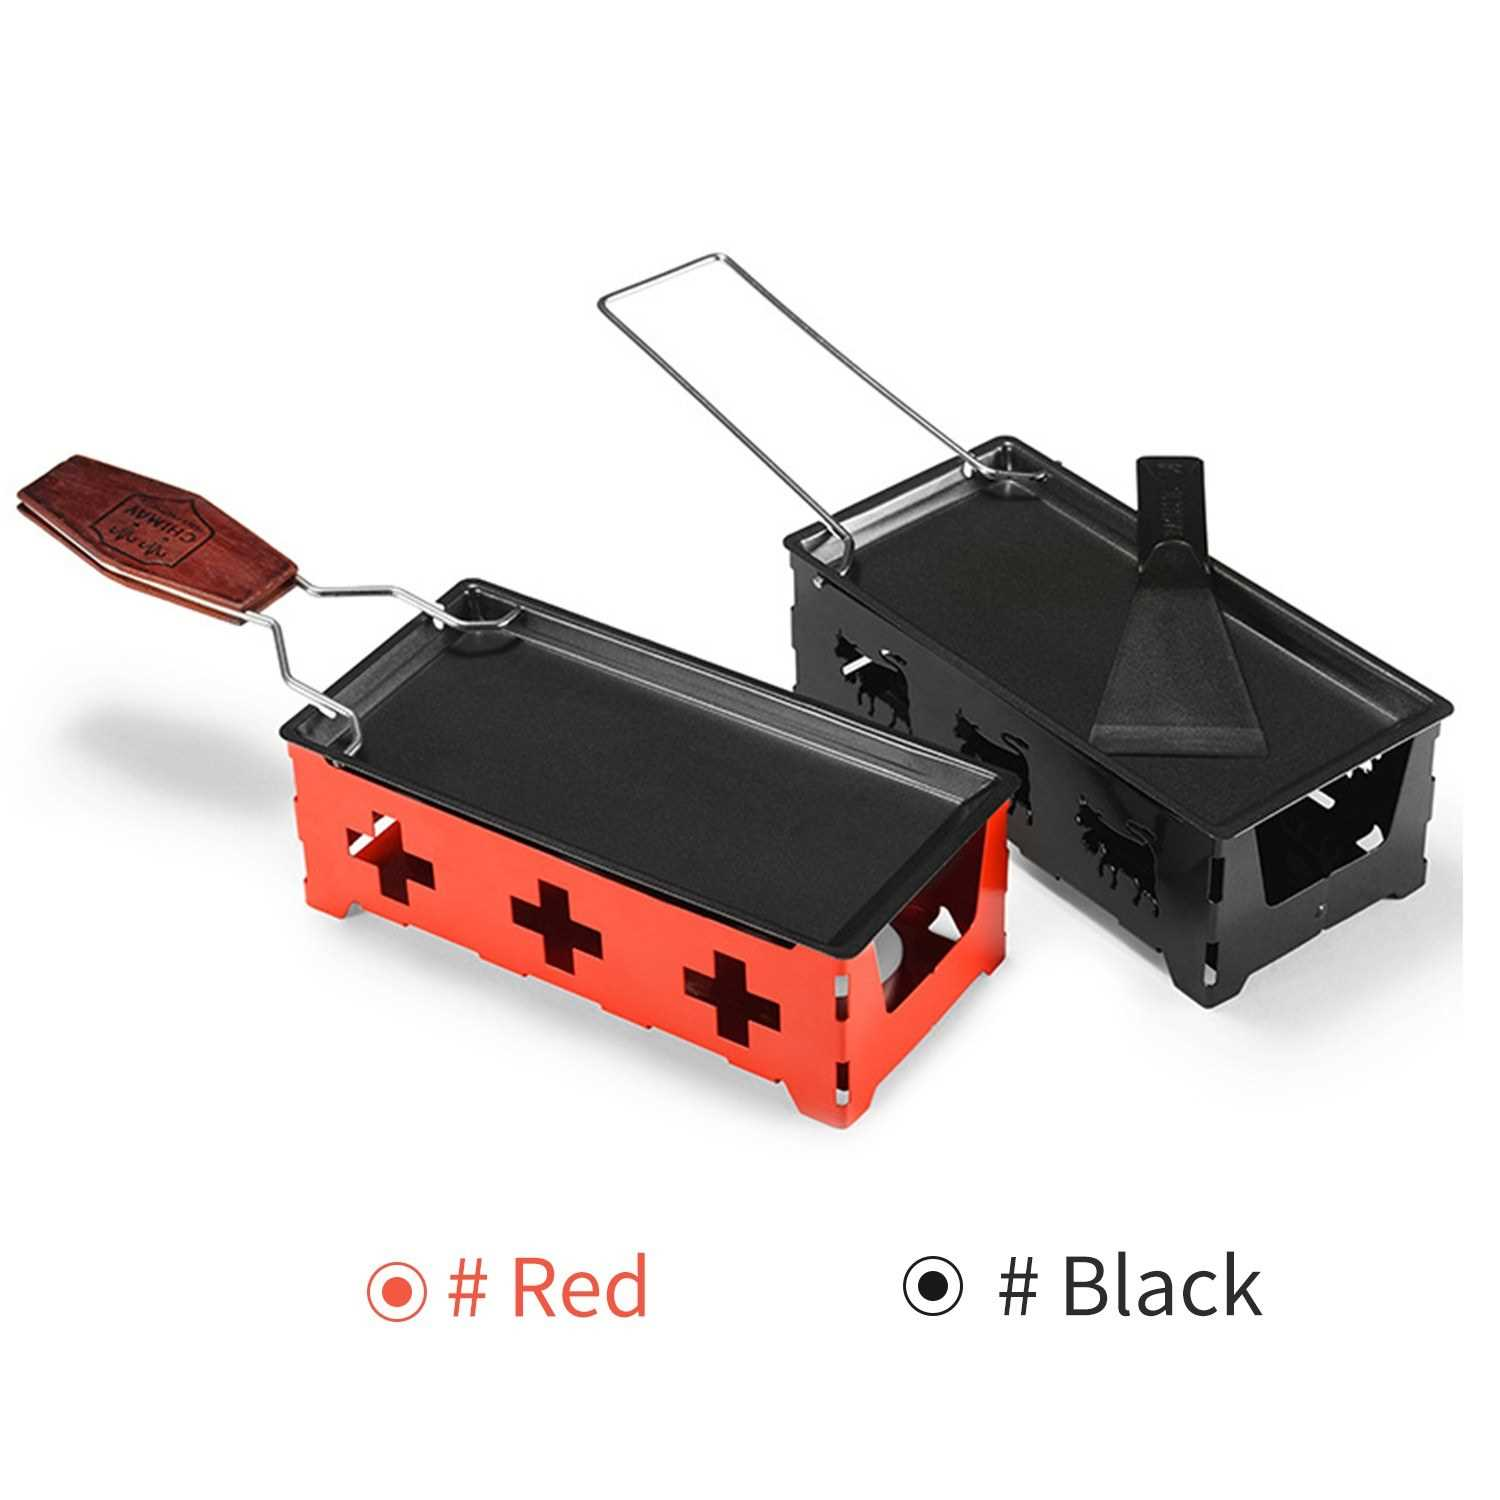 Non-Stick Raclette Grill Set Cheese Melter Pan with Spatula Foldable Wooden Ha